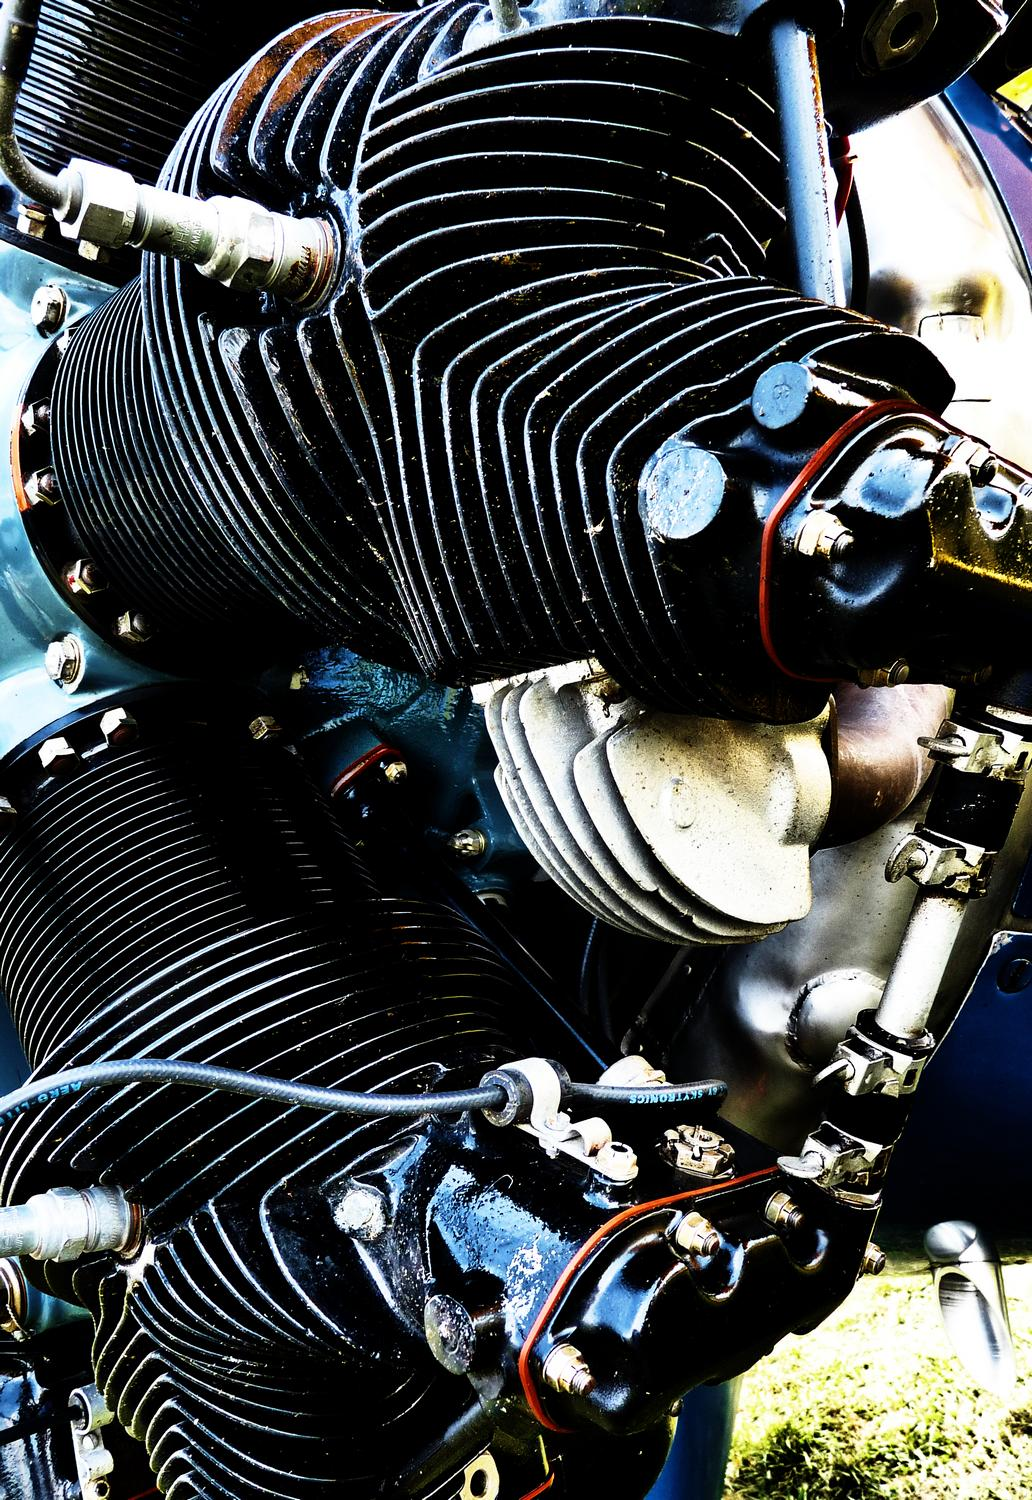 engine in an old airplane - More vintage engine porn. - Panasonic DMC-FZ28 -- At the Flying Circus - Bealton Virginia - Tony Karp, design, art, photography, techno-impressionist, techno-impressionism, aerial photography , drone , drones , dji , mavic pro , video , 3D printing - Books -